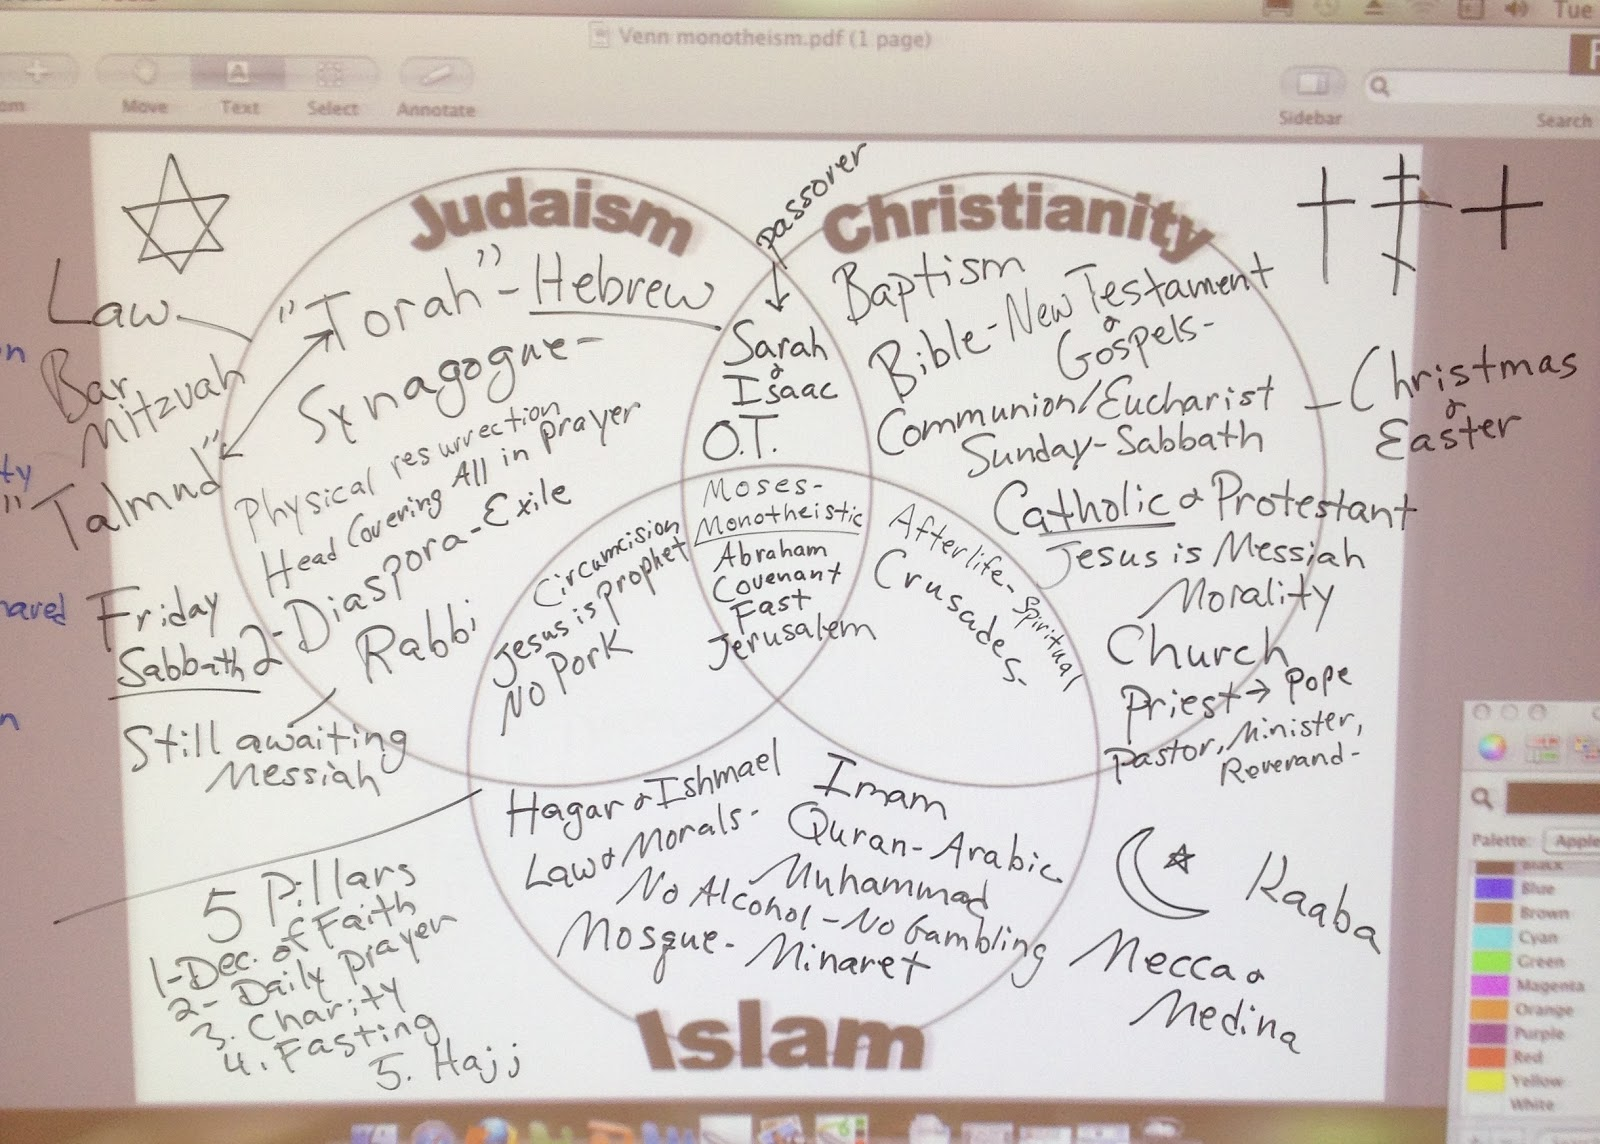 hinduism vs buddhism venn diagram amoeba islam christianity judaism driverlayer